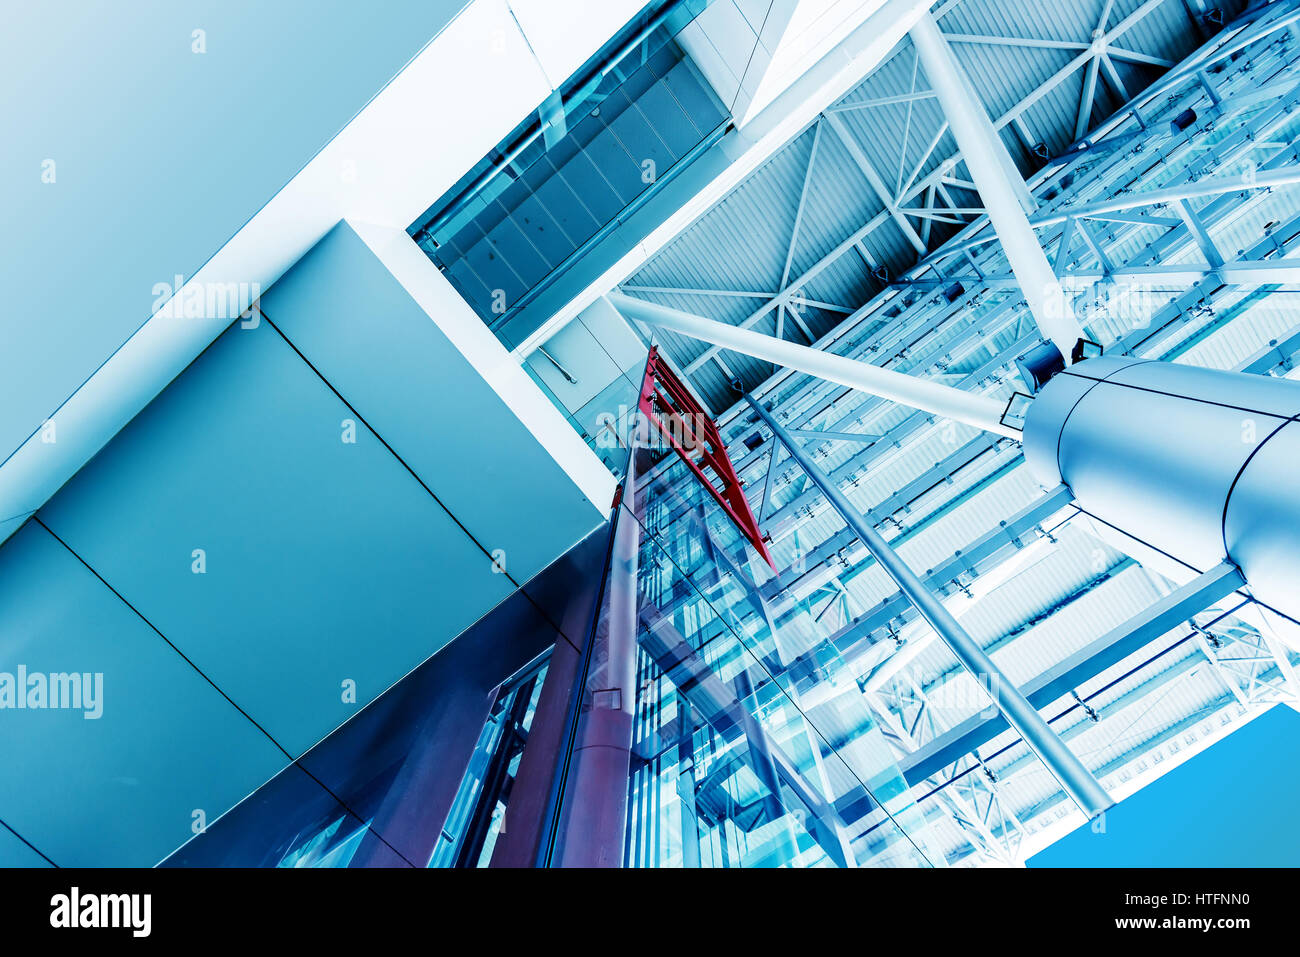 Elevator Cables Stock Photos & Elevator Cables Stock Images - Alamy